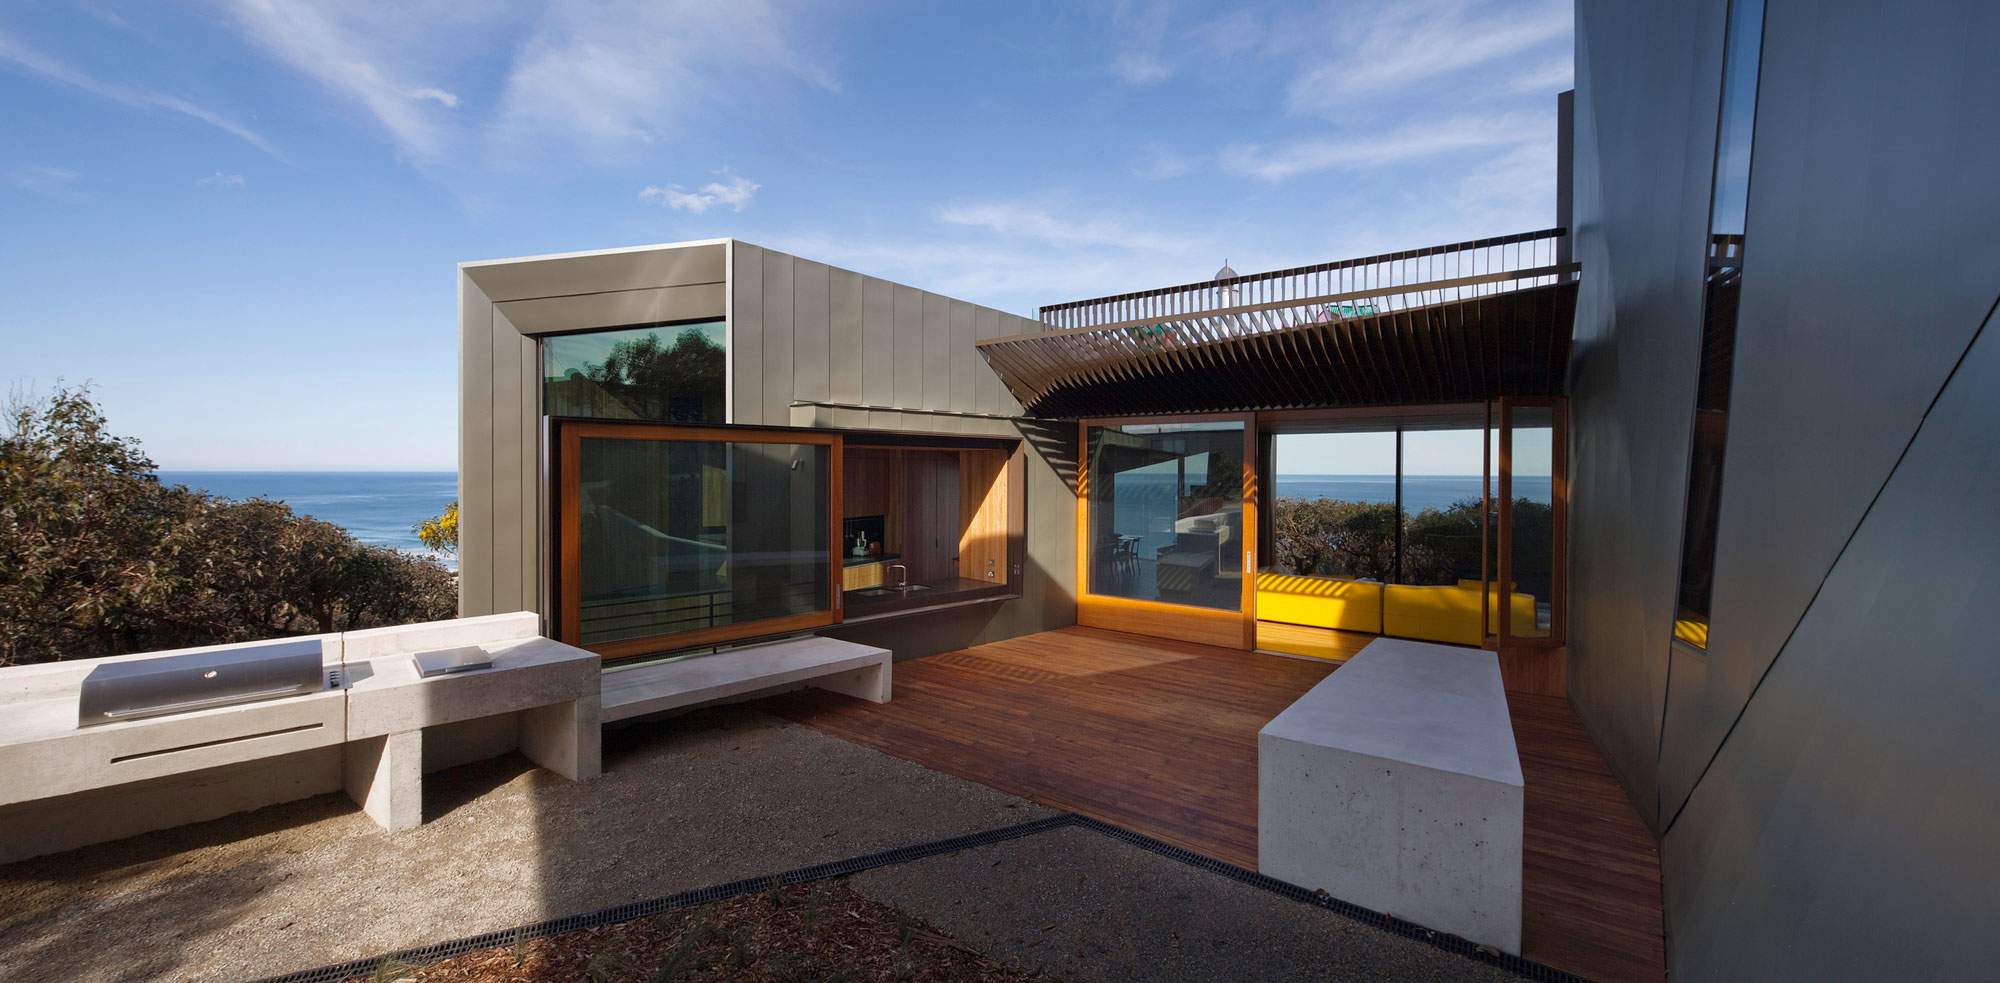 Fairhaven beach house by john wardle architects homedezen for Beach house architecture